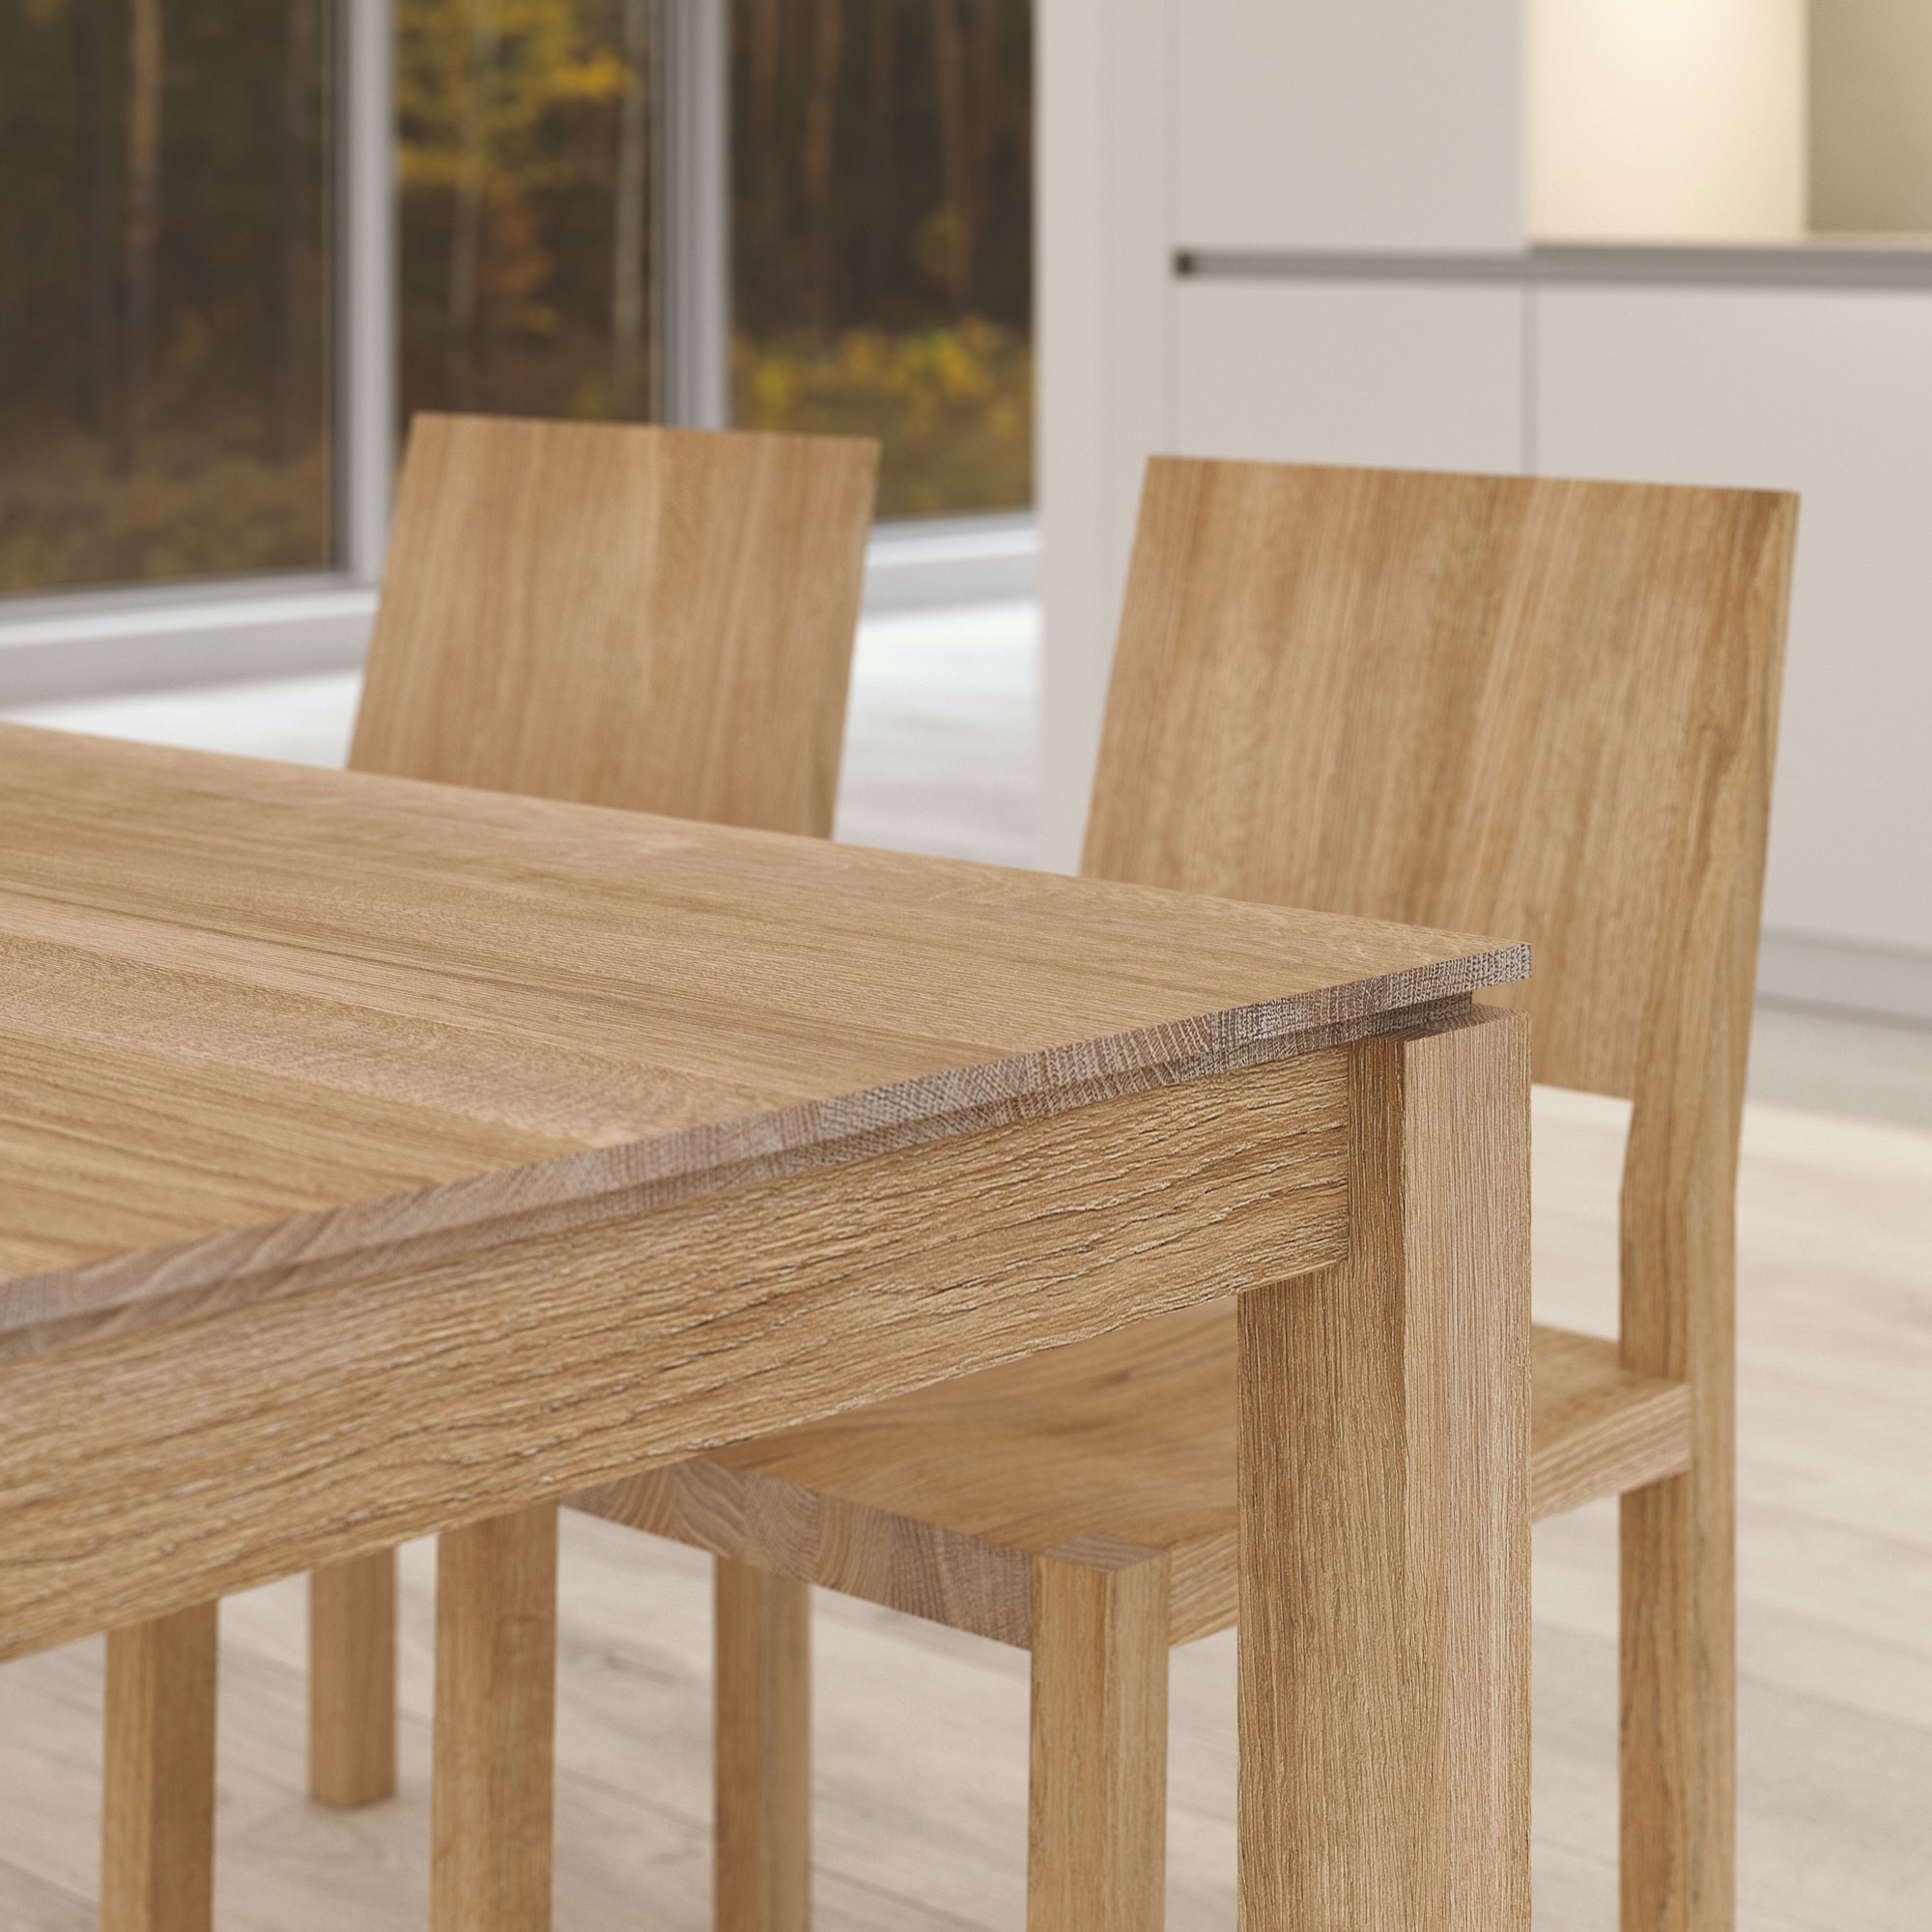 Extending Dining Table CONVERTO BUTTERFLY Final1 custom made in solid wood by vitamin design